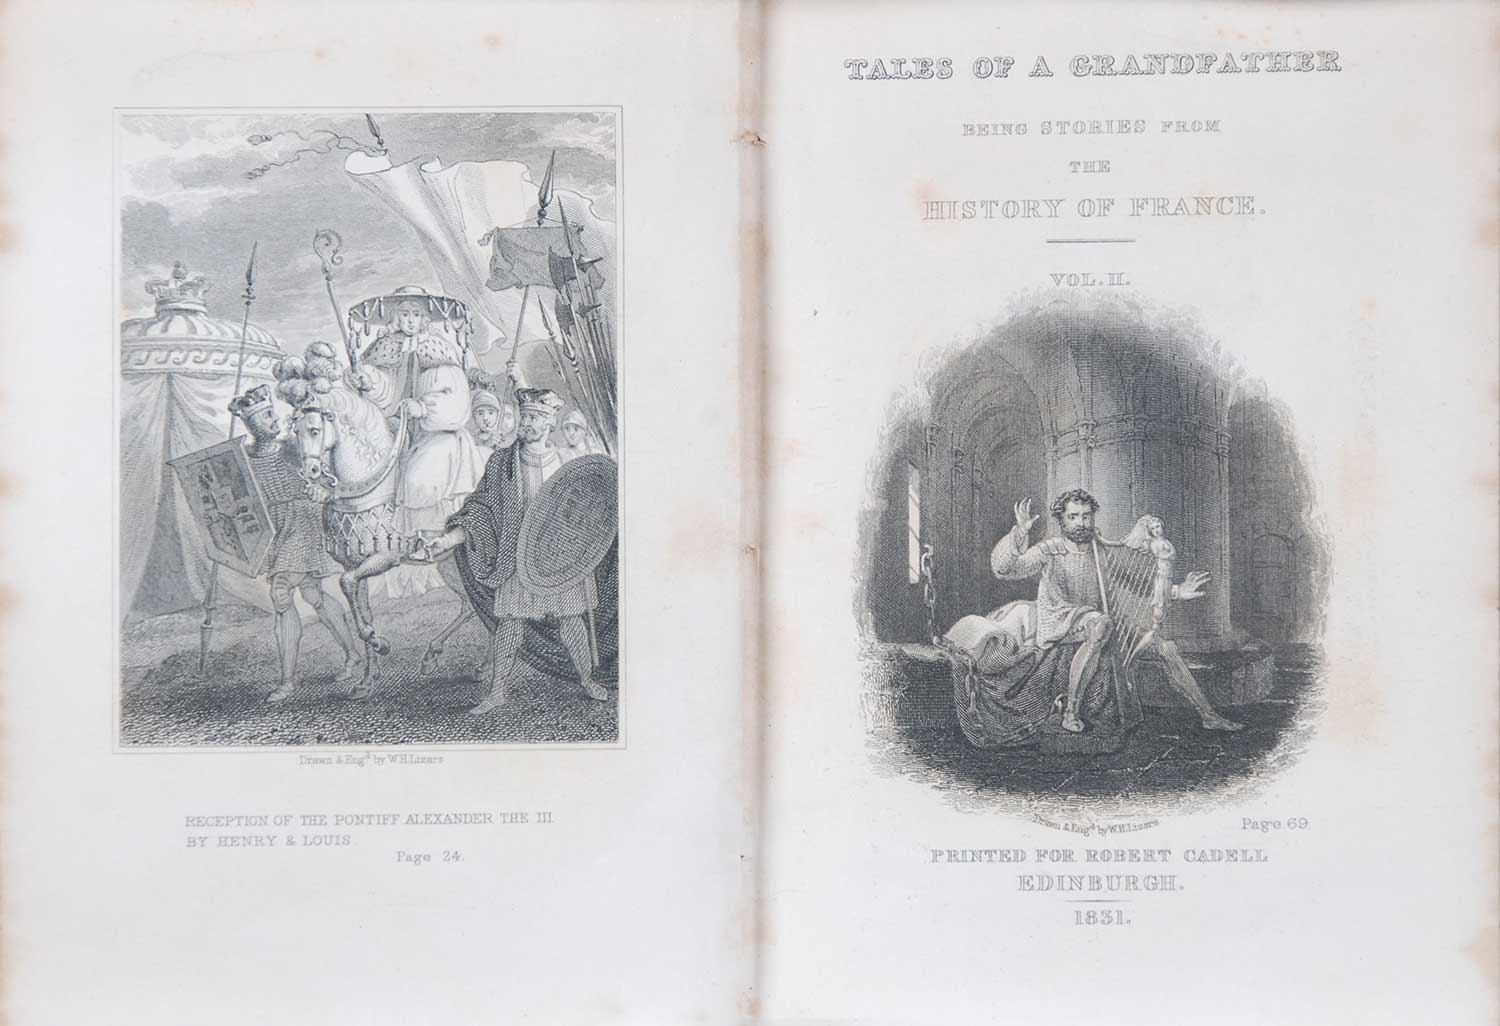 [Sir Walter Scott]. <em>Tales from a grandfather: being stories taken from the history of France</em>. [1st edition]. Printed for Robert Cadell, Edinburgh; Whittaker and Co., London; and John Cumming, Dublin, 1831. Three volumes; Vol. 2 displayed.